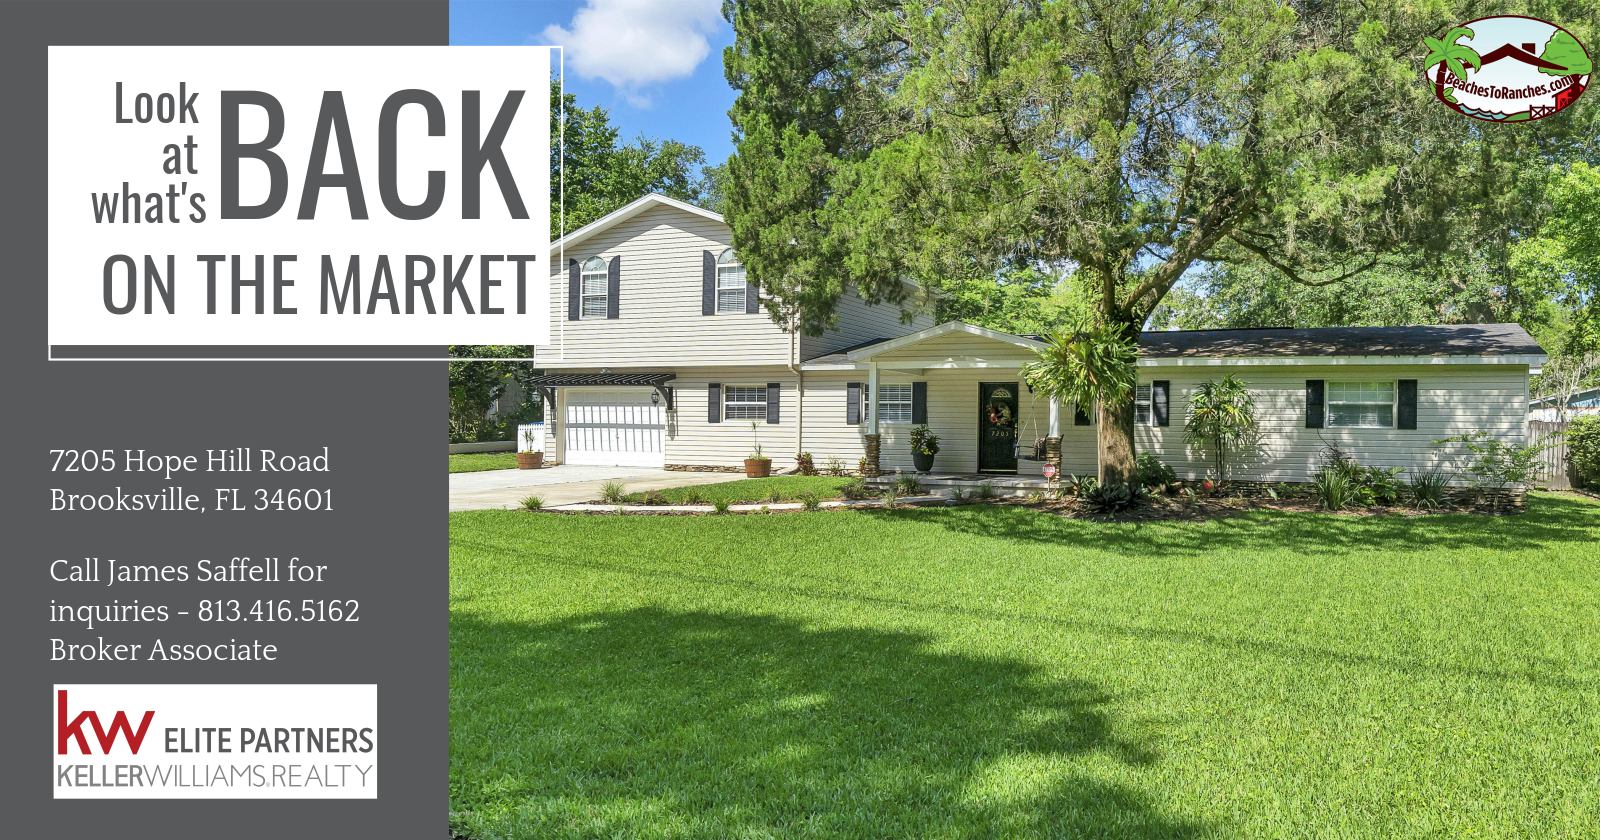 Back On The Market 7205 Hope Hill Road Brooksville Fl 34601